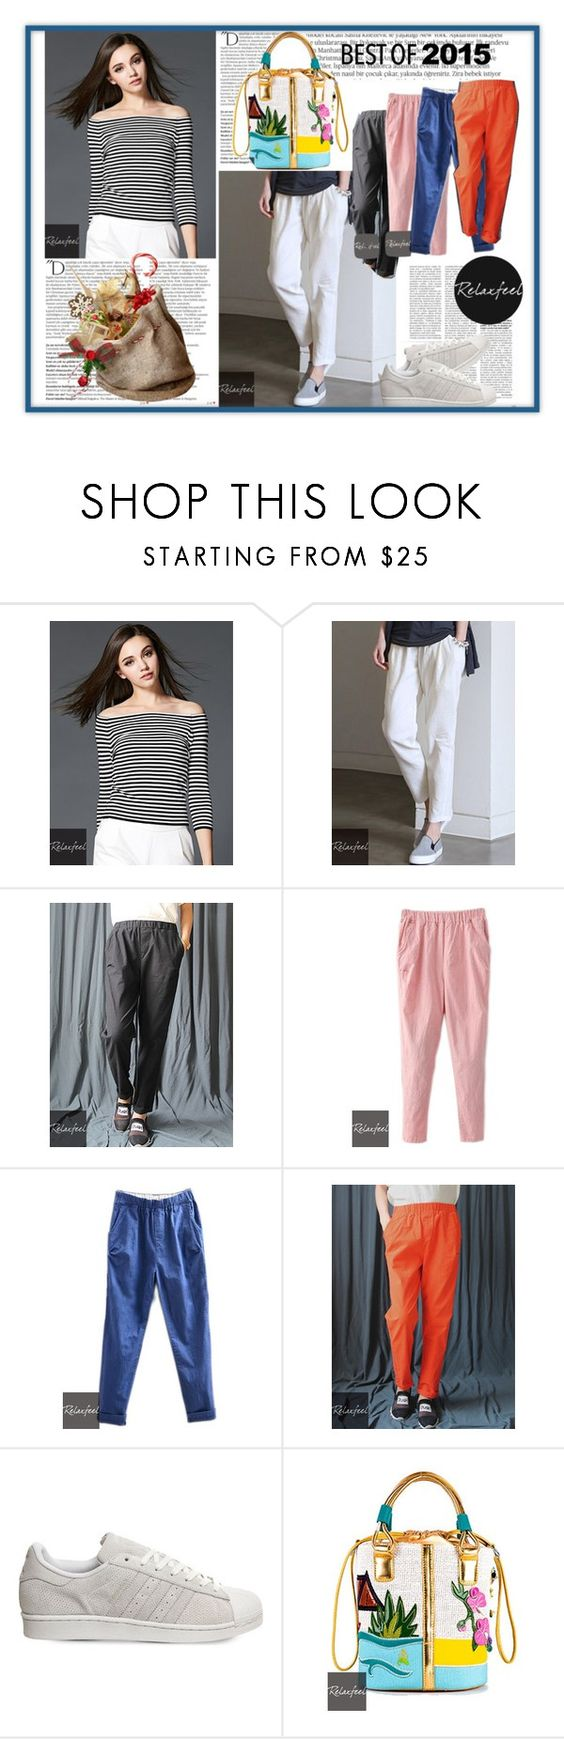 """Relaxfeel.com 11."" by azraa91 ❤ liked on Polyvore featuring Relaxfeel, Balmain and adidas"